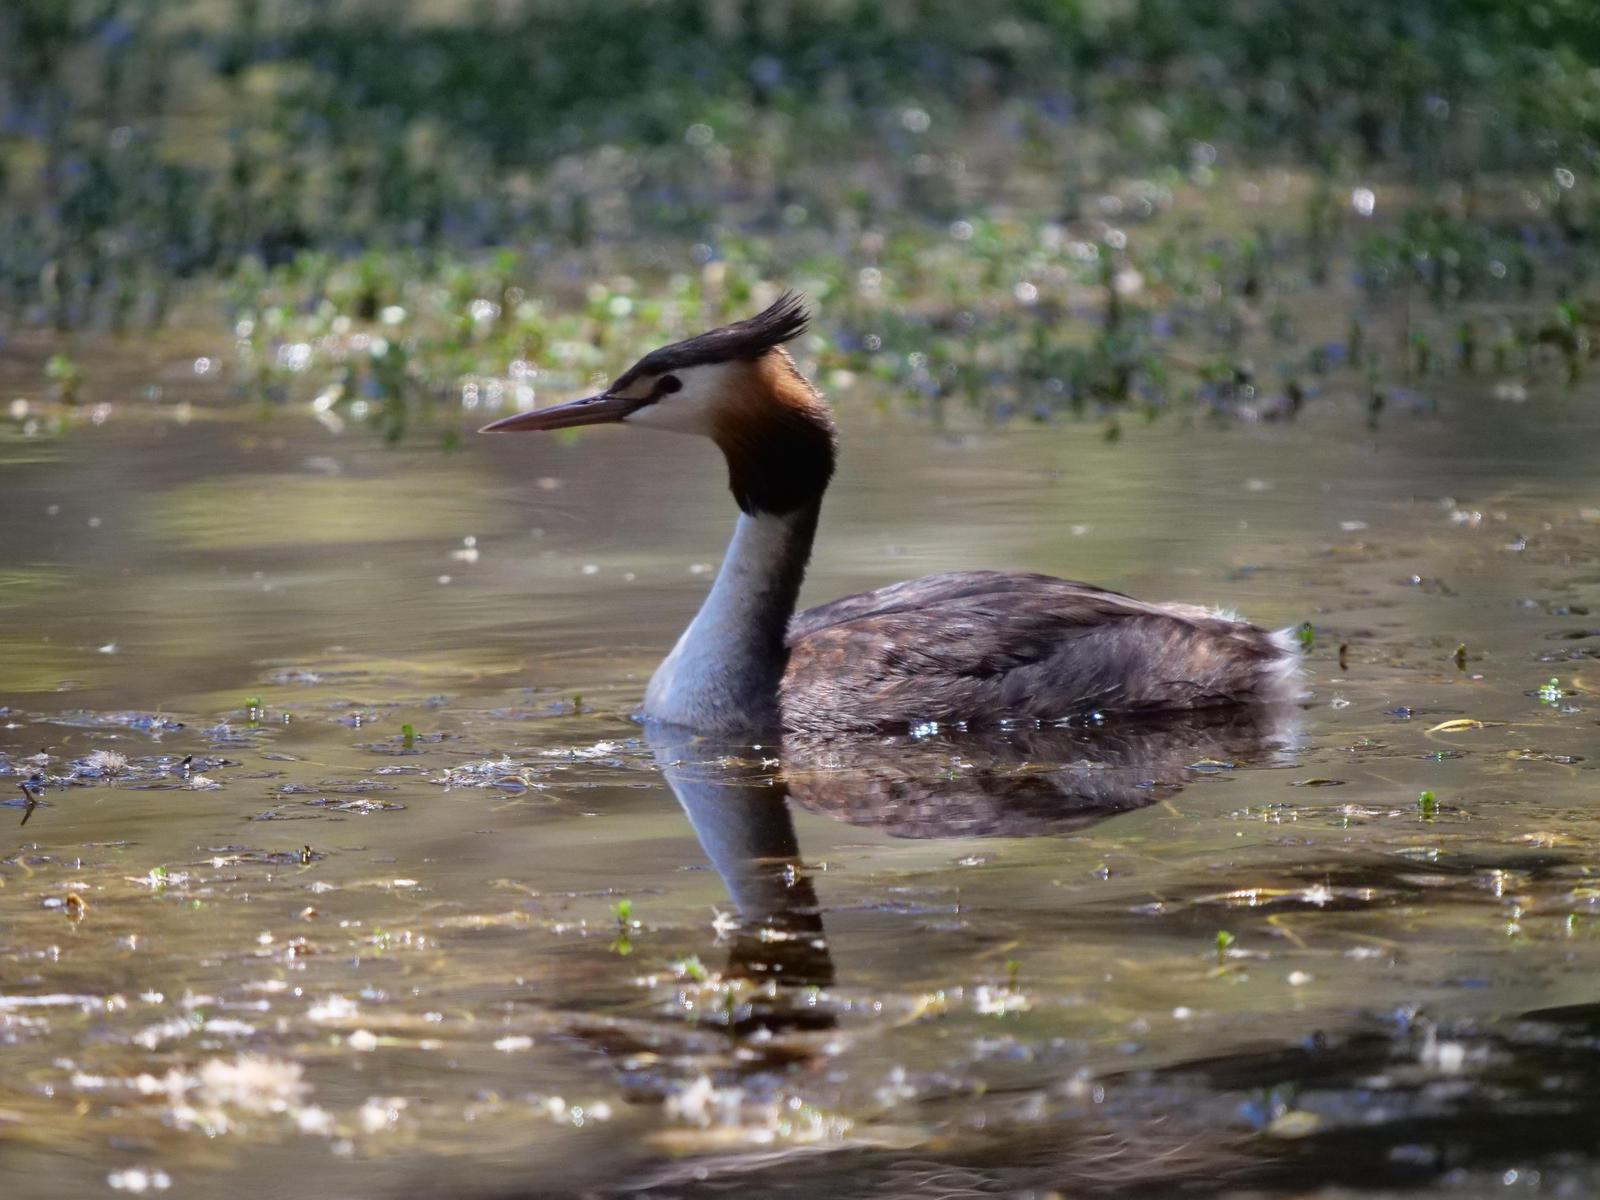 Great Crested Grebe Photo by Peter Lowe